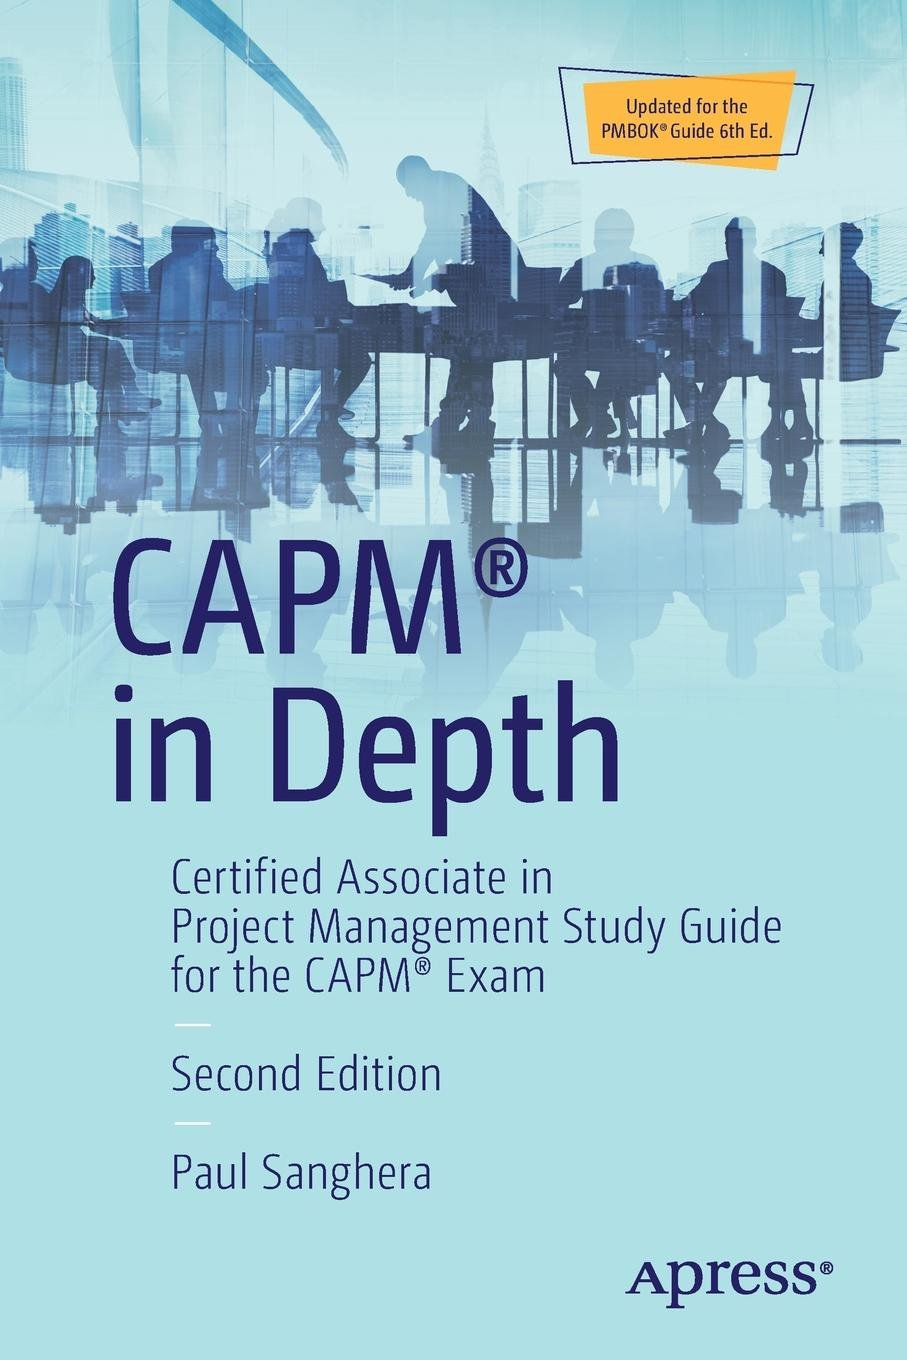 Capm In Depth Certified Associate In Project Management Study